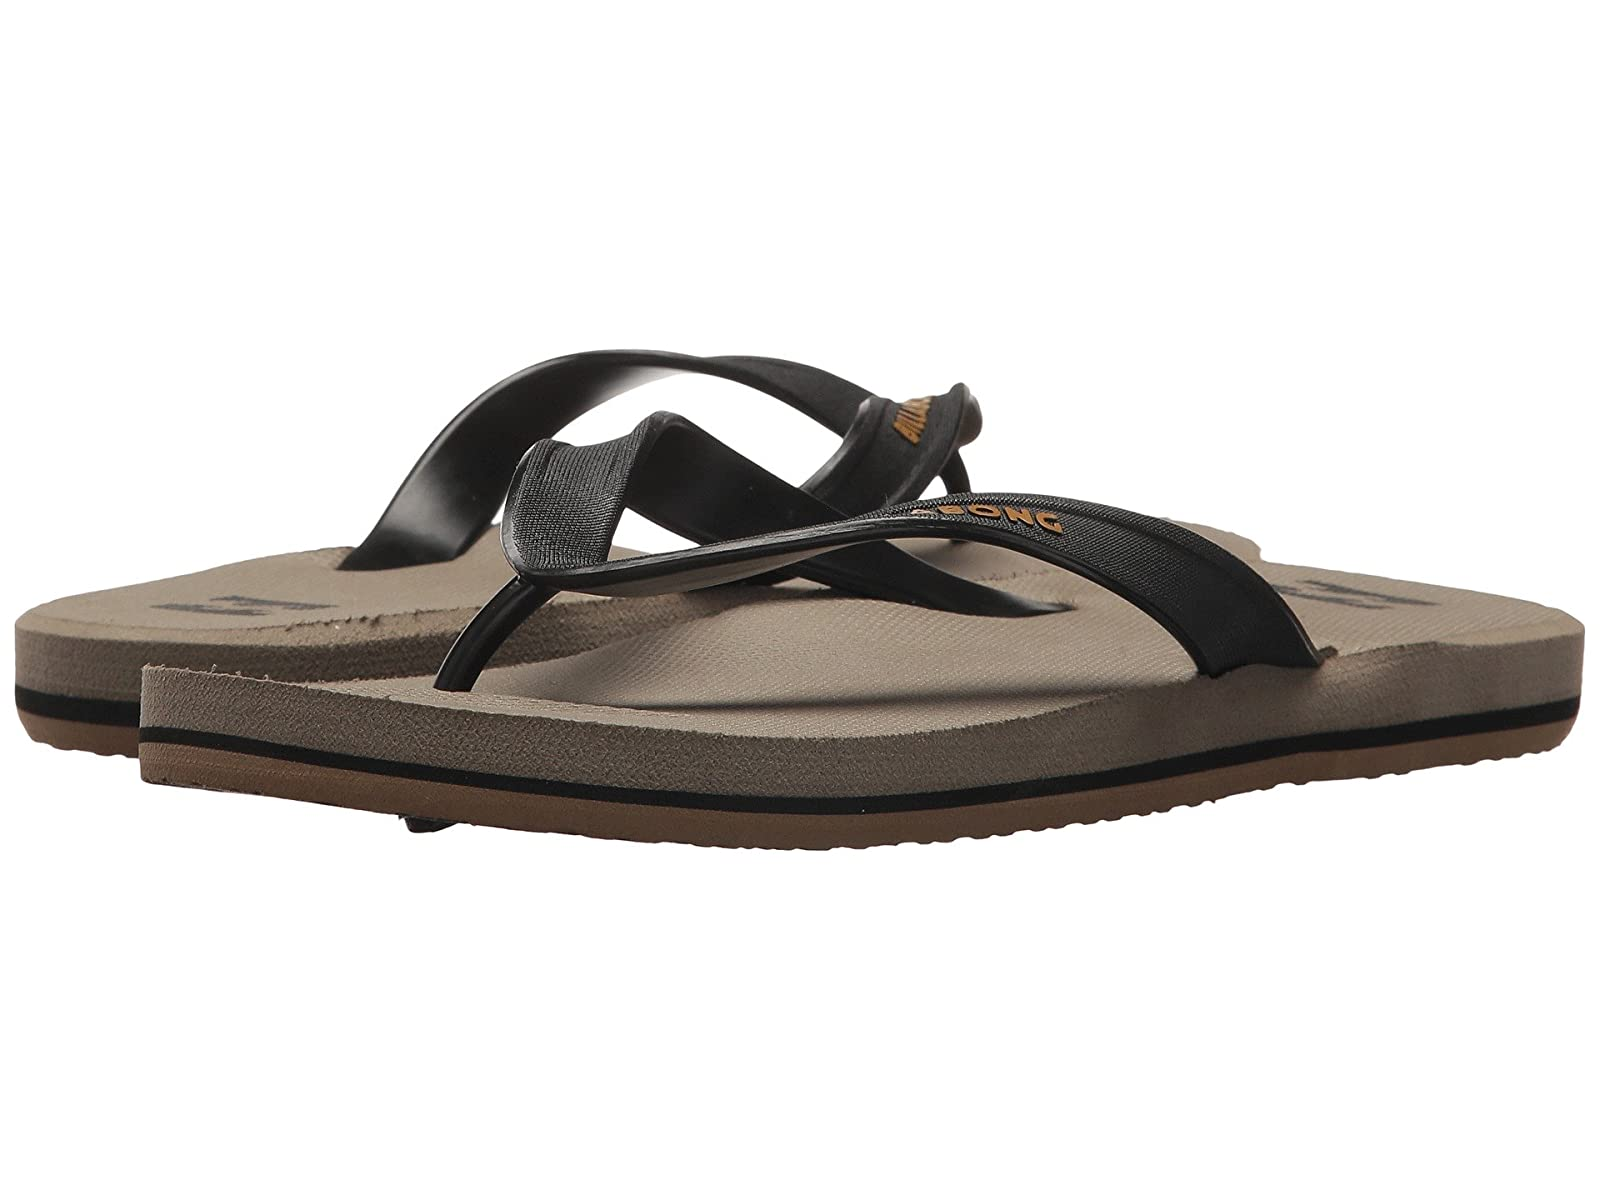 Billabong All Day Solid SandalComfortable and distinctive shoes